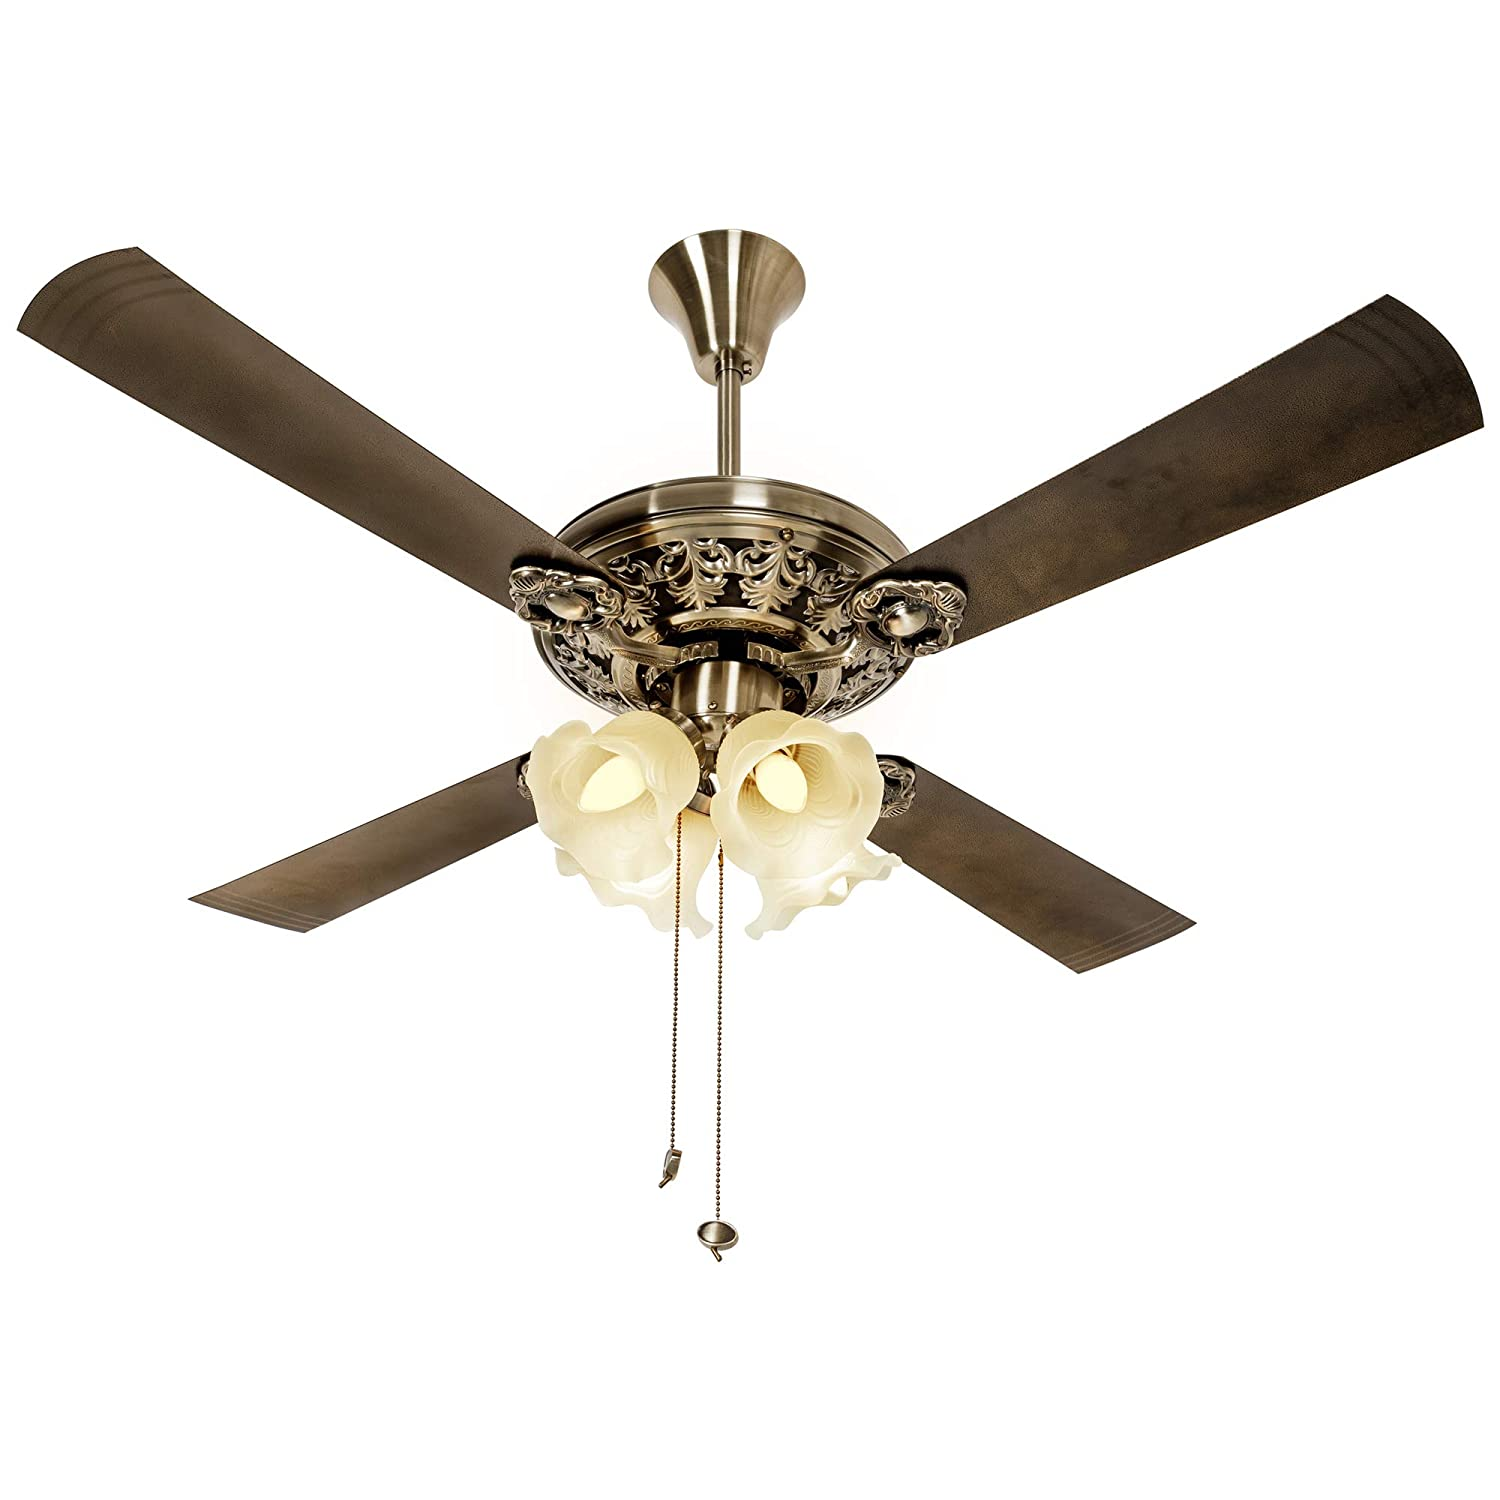 Buy Crompton Nebula Ceiling Fan With Decorative Lights 1200 Mm Antique Brass Online At Low Prices In India Amazon In